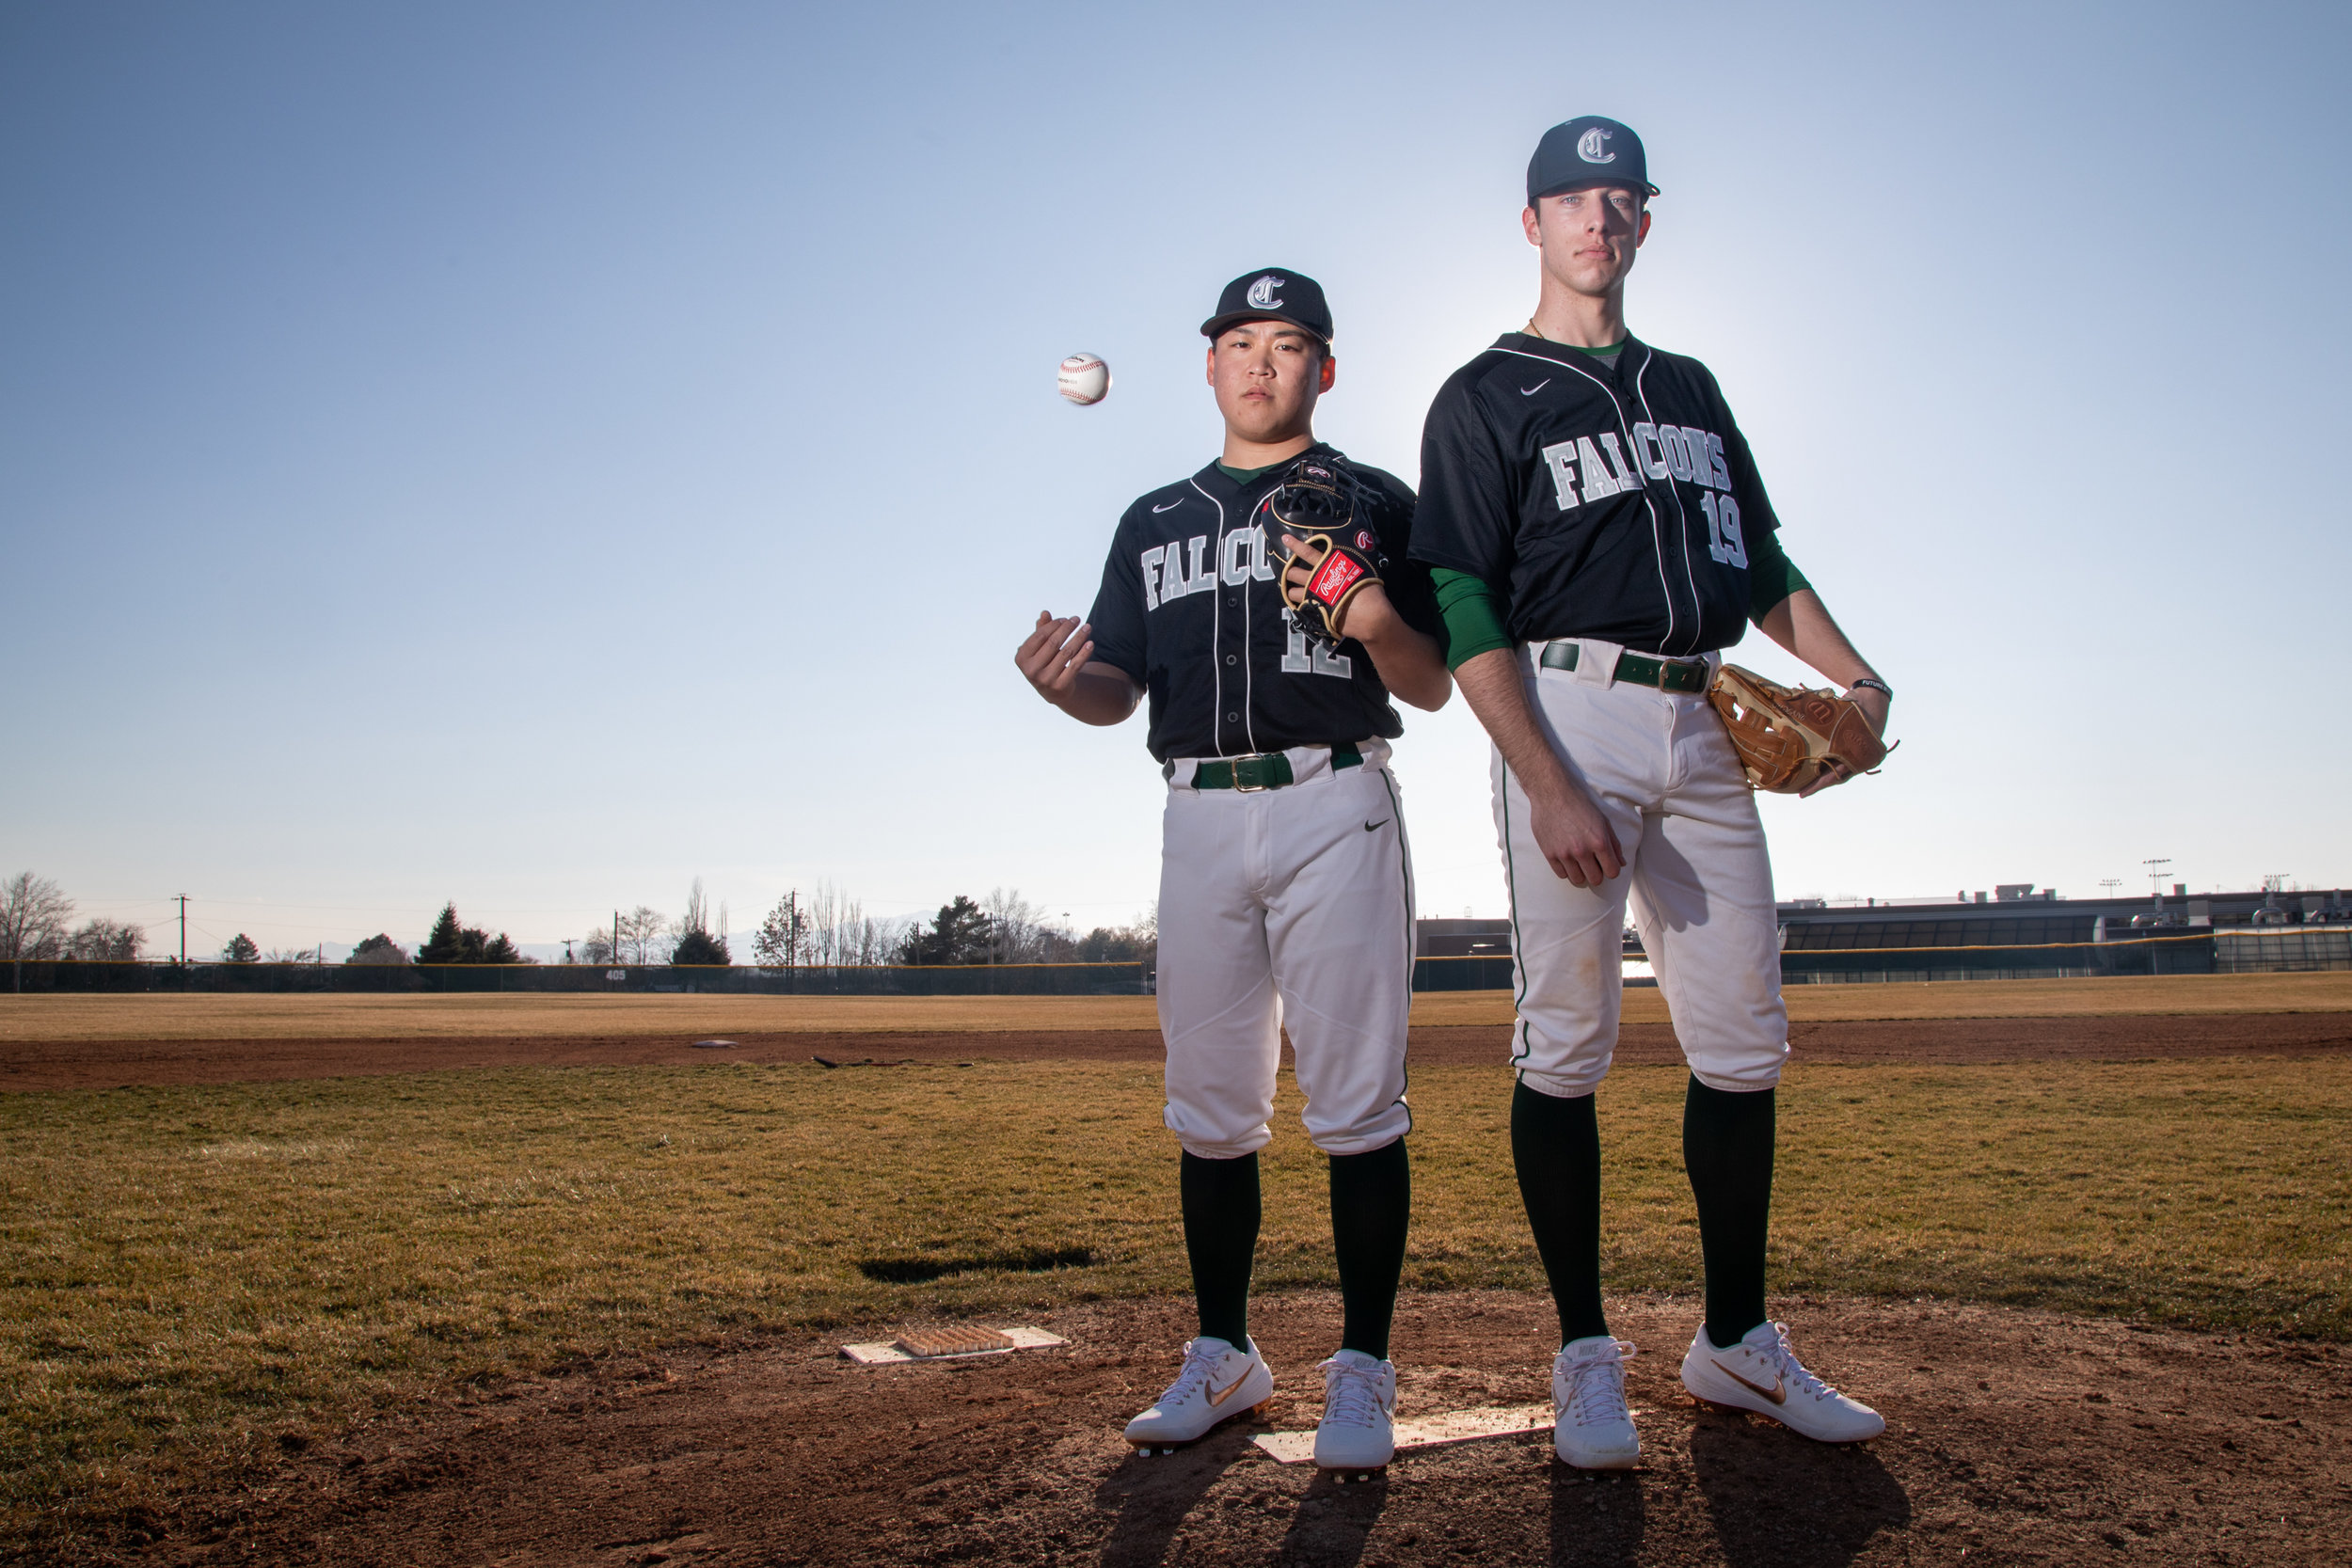 Clearfield High pitchers, Bryson Hirabayashi, left, and Conner Coleman pose on the mound at the high school on Monday, March 11, 2019.